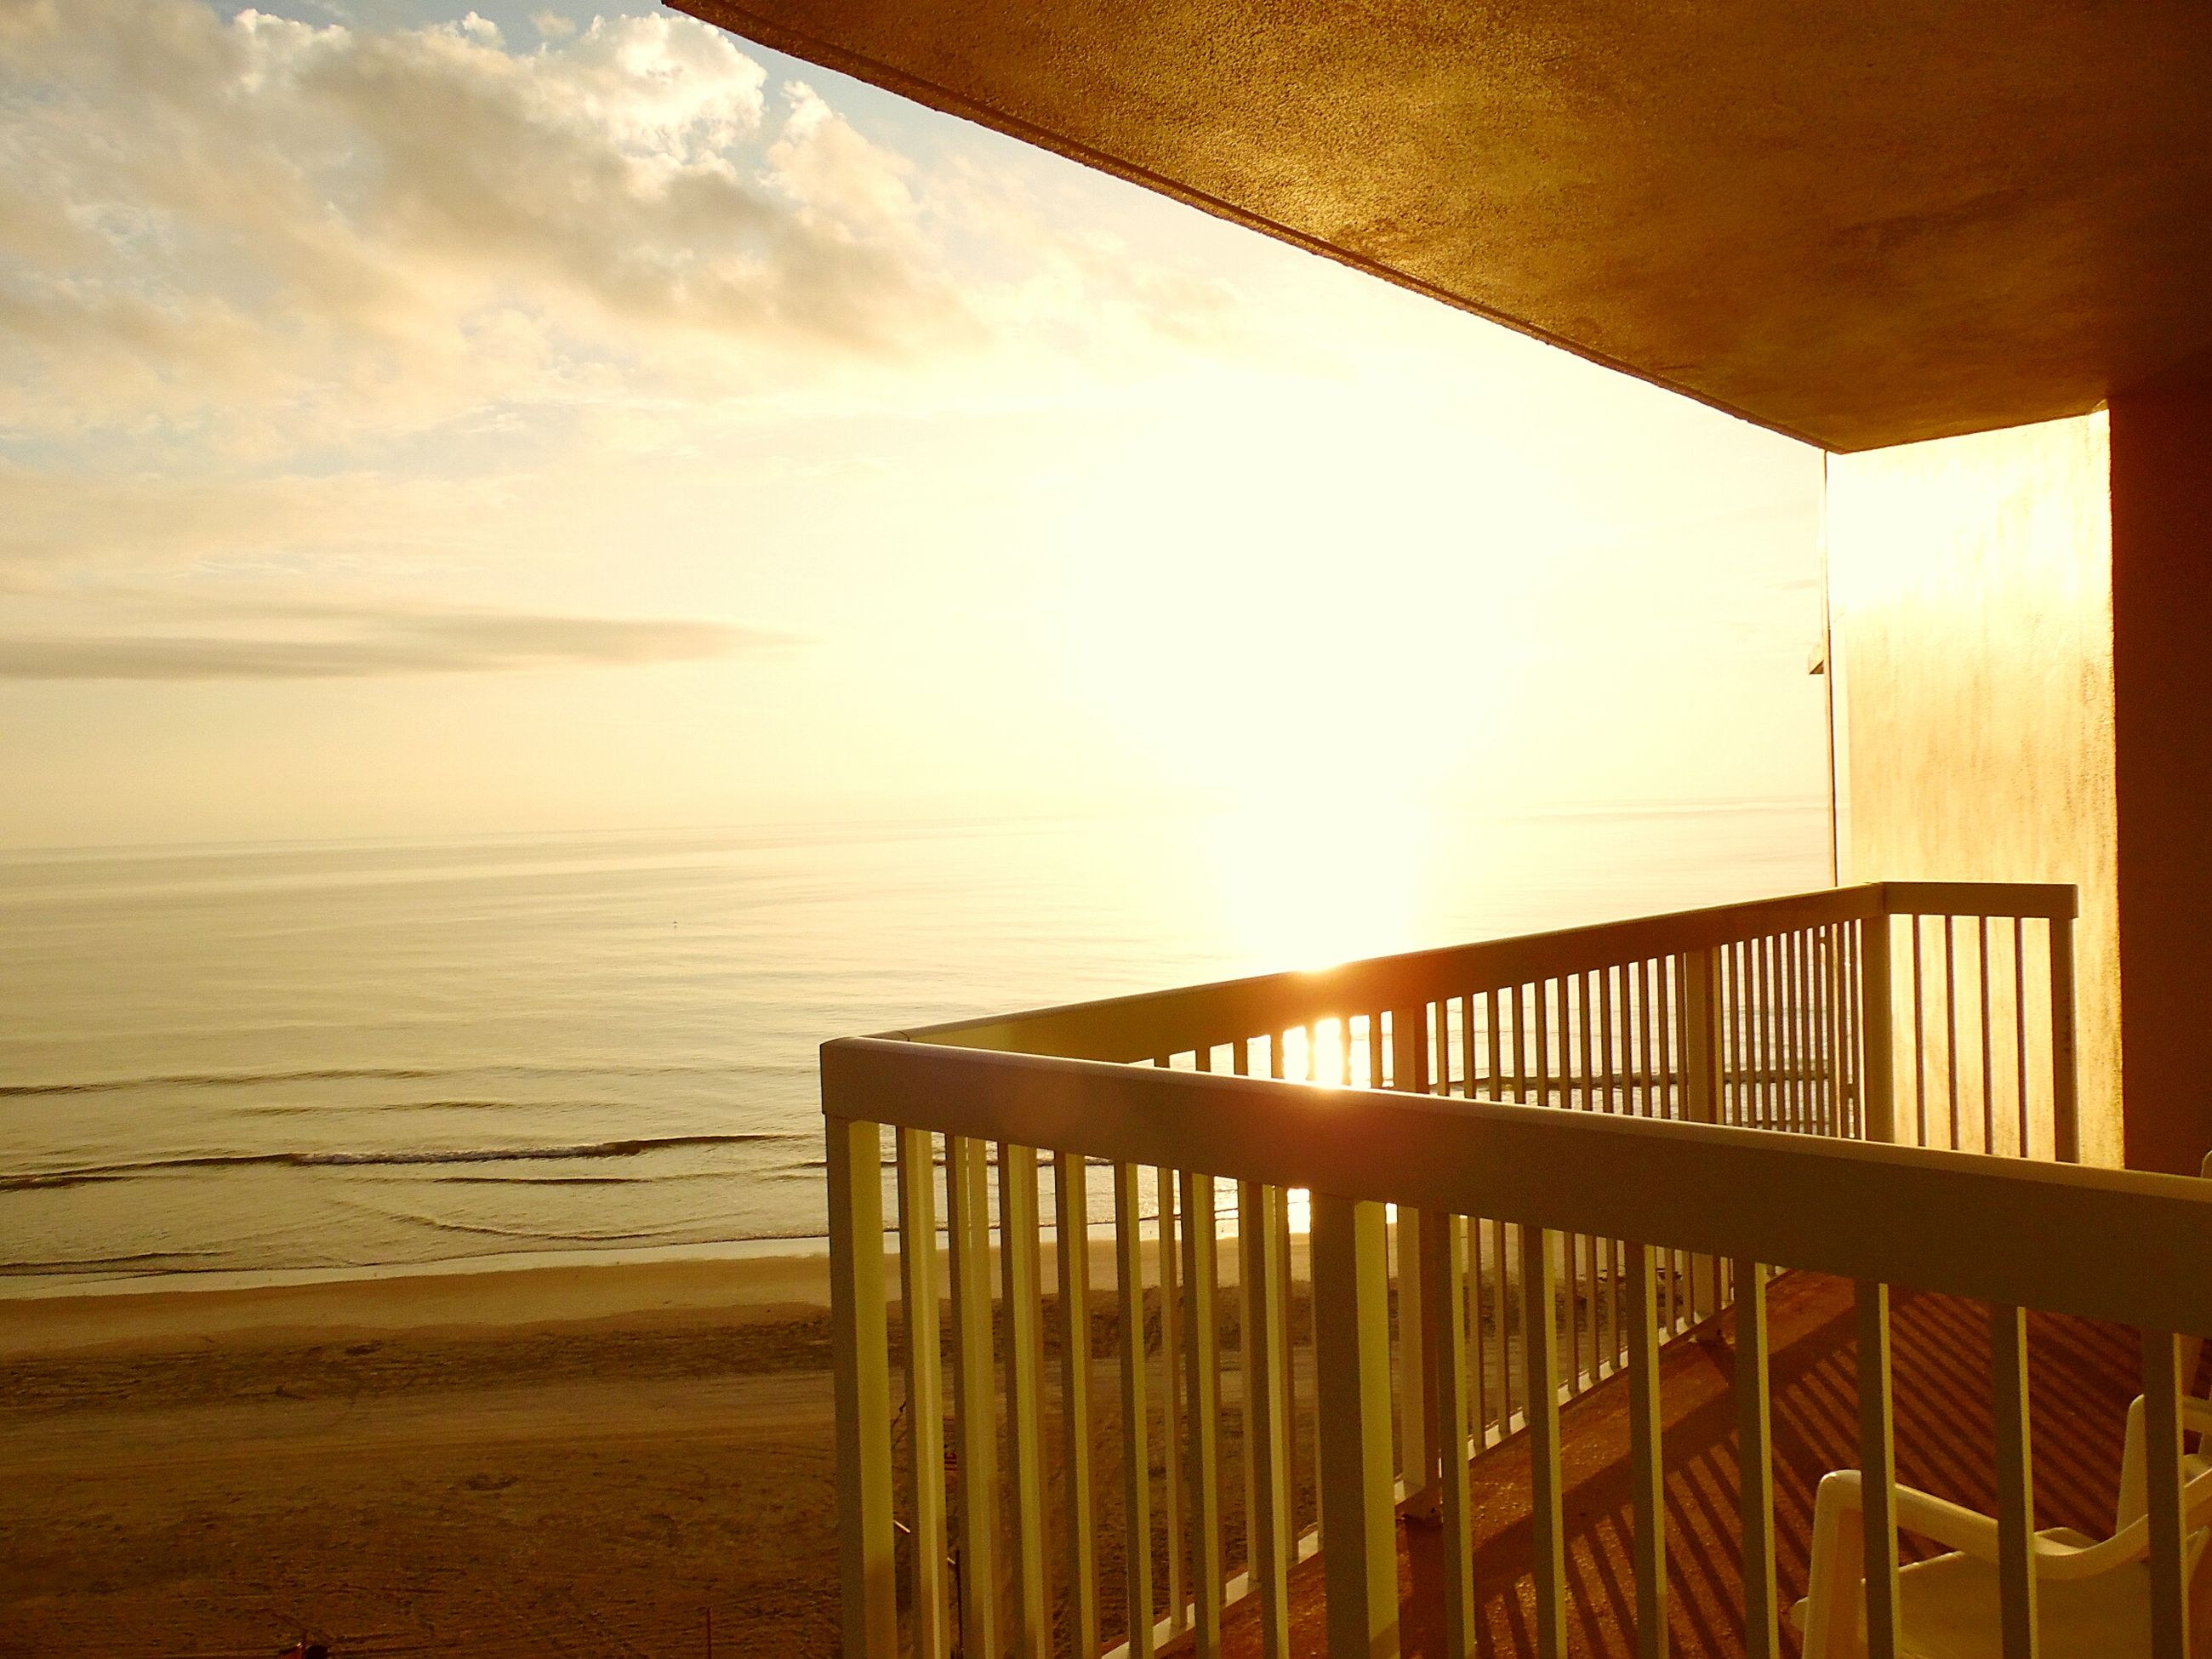 sea, horizon over water, beach, sky, water, sunlight, railing, scenics, tranquil scene, tranquility, sunset, sand, shore, beauty in nature, sun, wood - material, nature, idyllic, pier, built structure